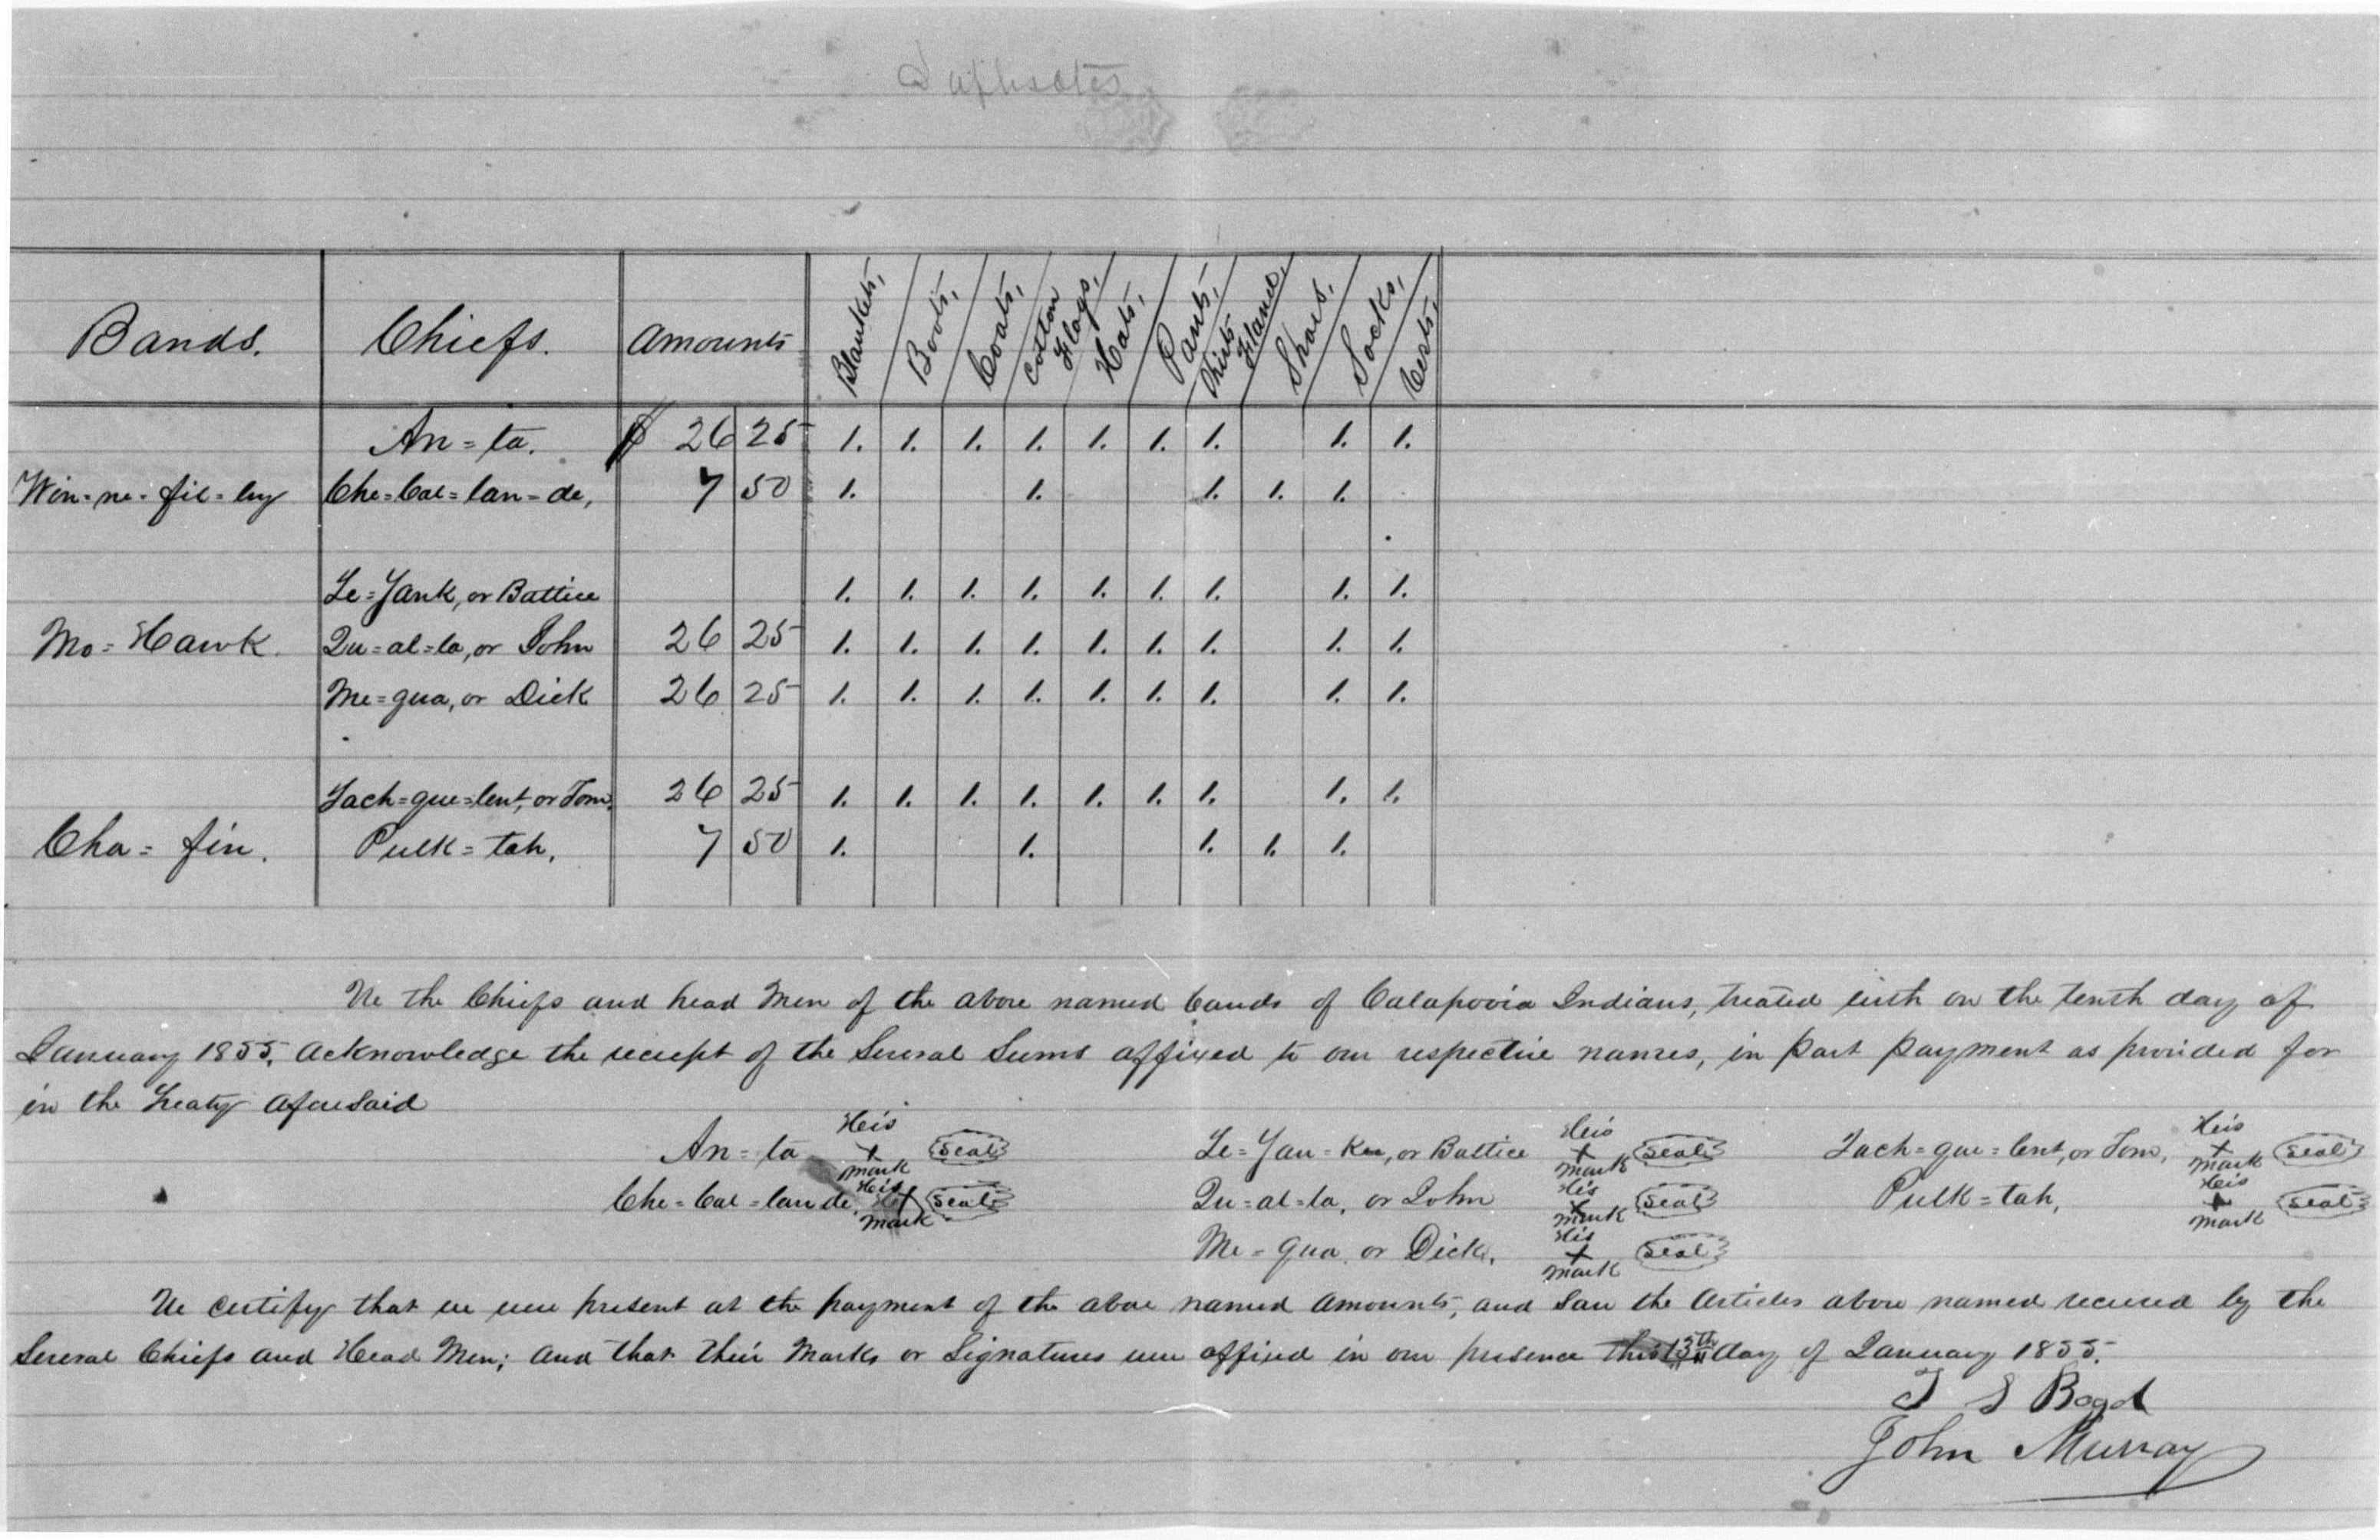 Calapooia Indian clothing invoice 1855